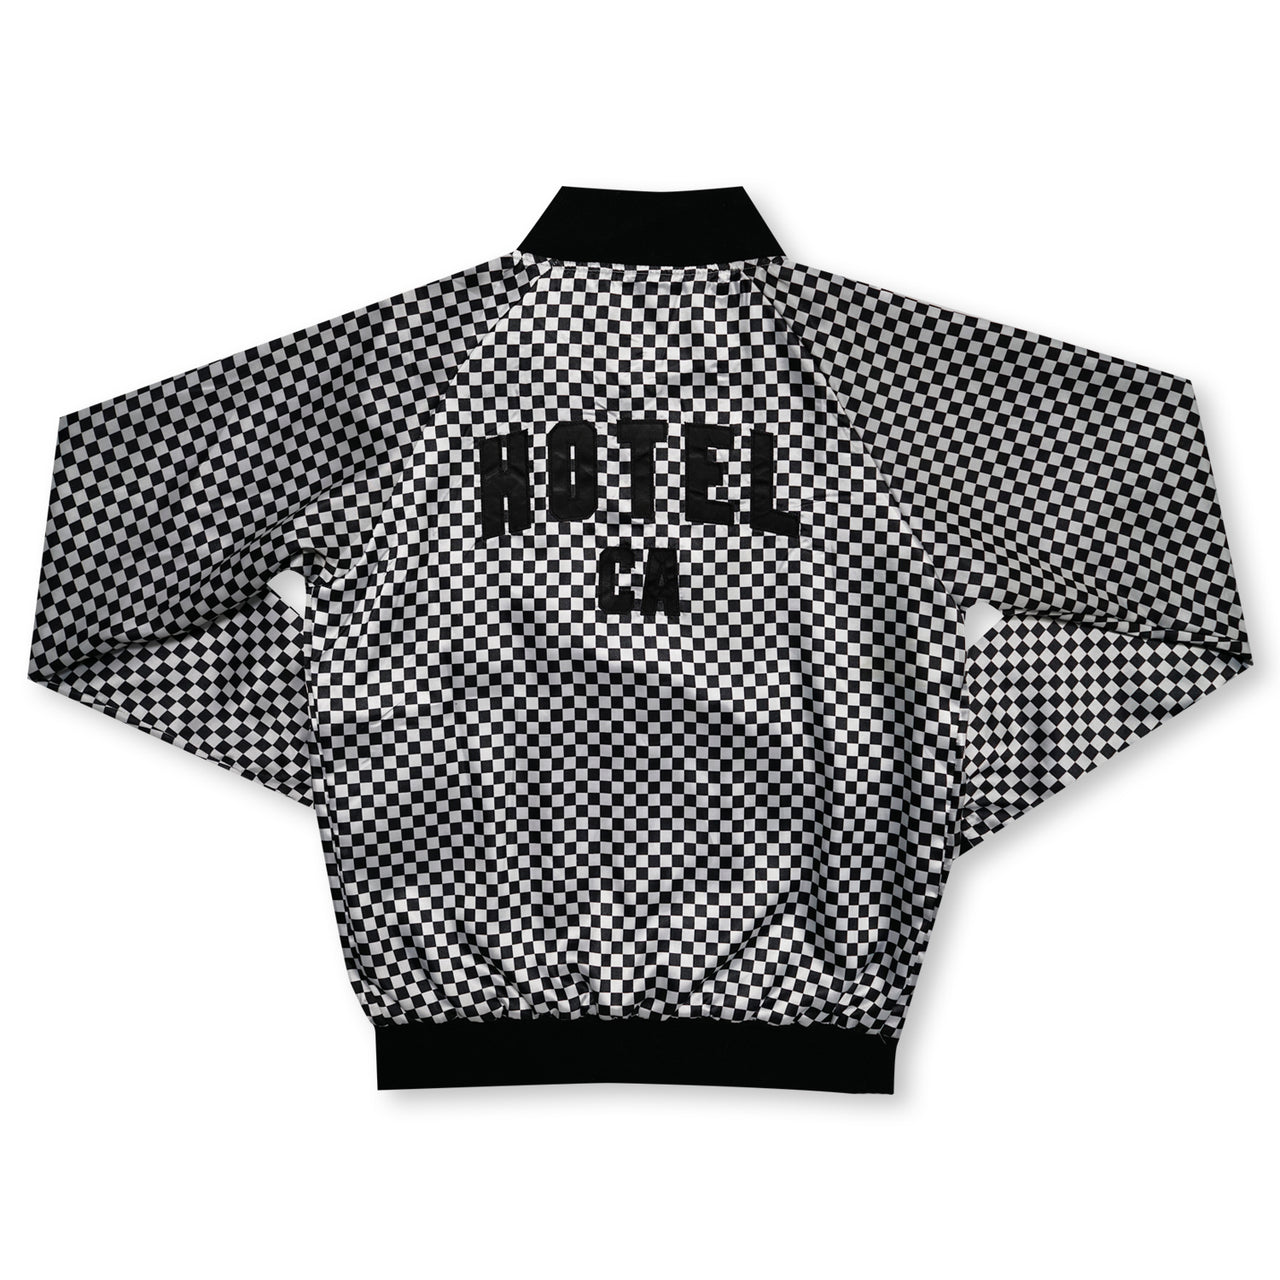 HOTEL CA Checkered Bomber Jacket - Black / White